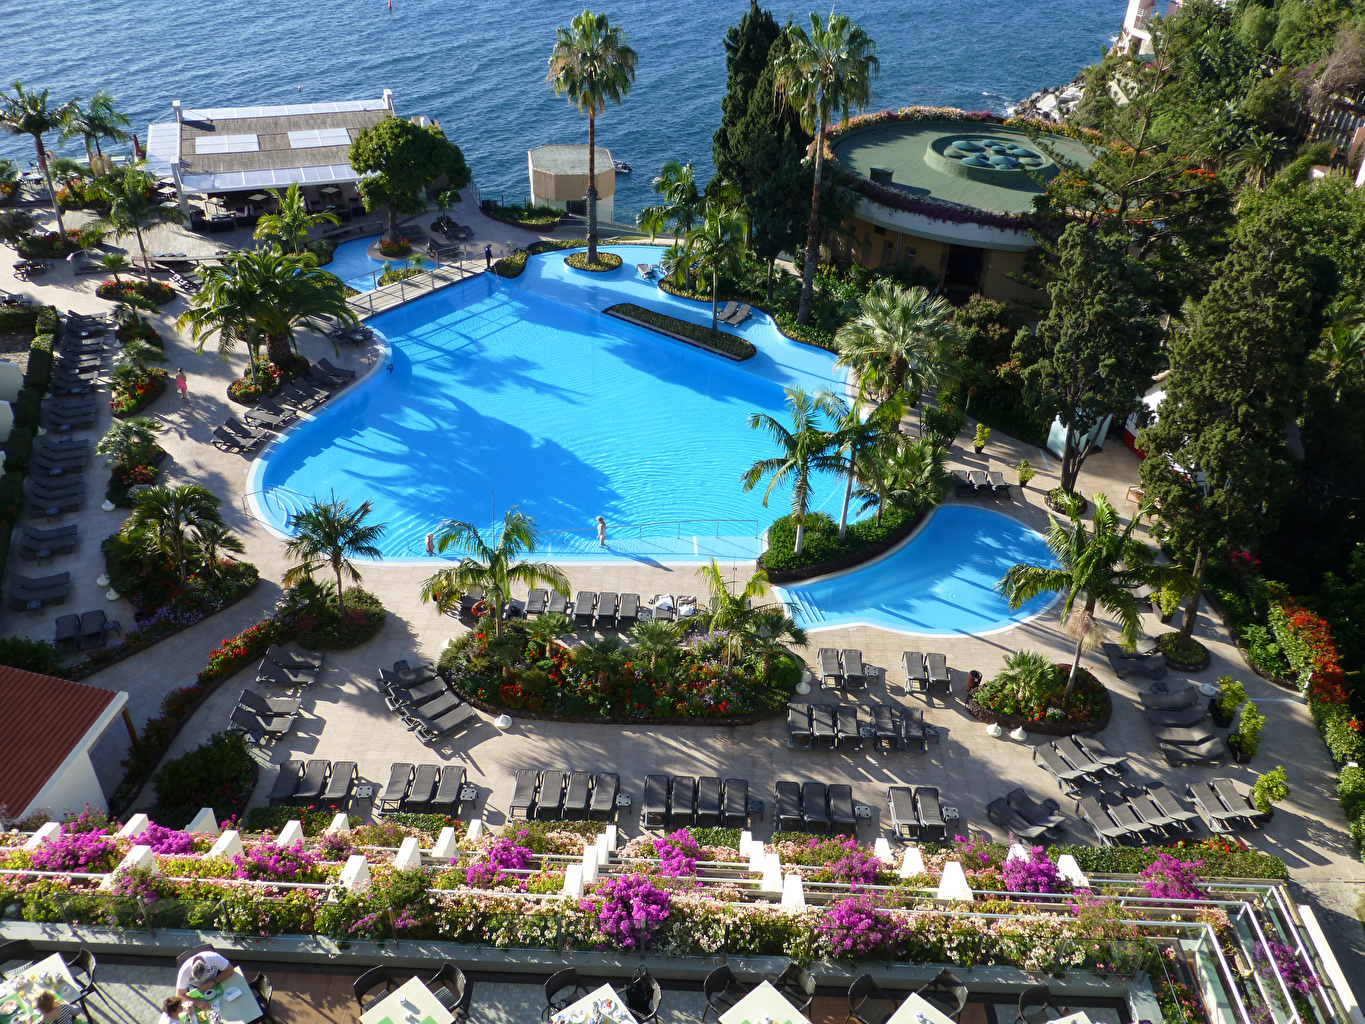 Wallpaper Portugal Resorts Swimming bath Madeira Palms Sunlounger Cities Pools Spa town palm trees